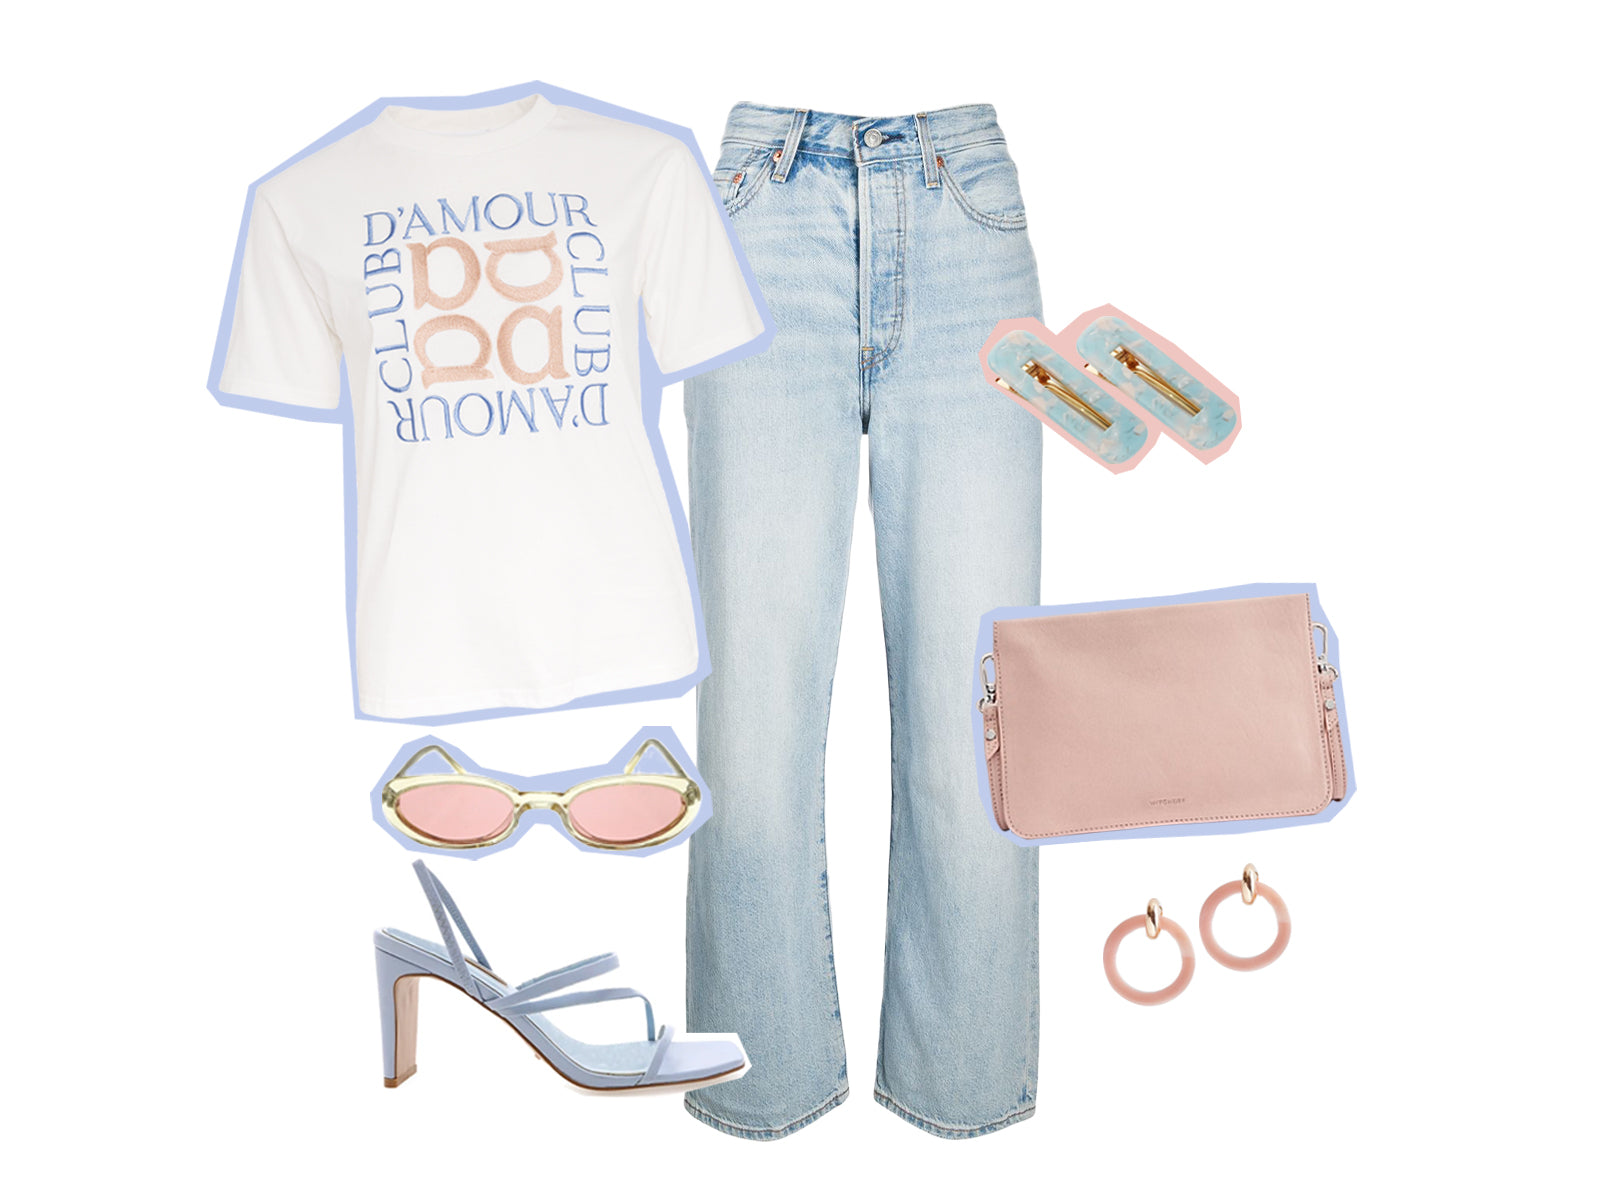 Alpha Embroidered Logo Tee, denim jeans, heels and accessories